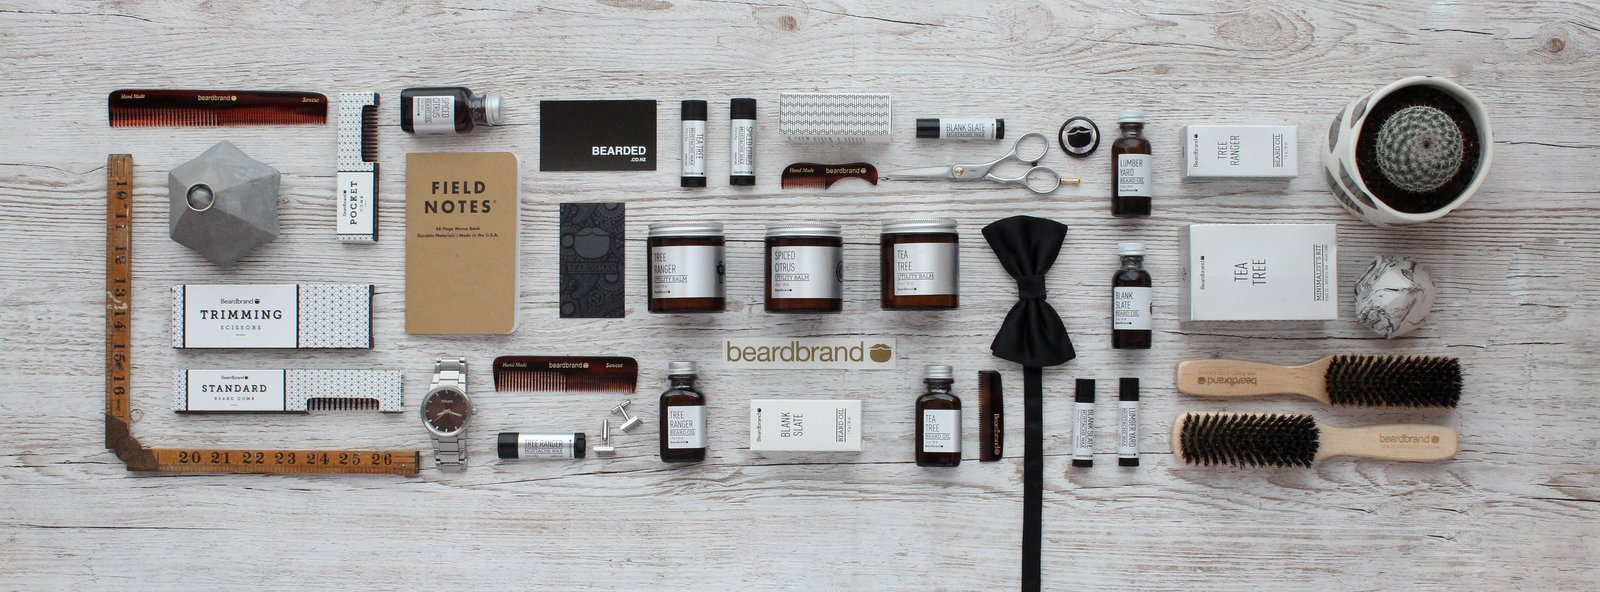 Bearbrand Products